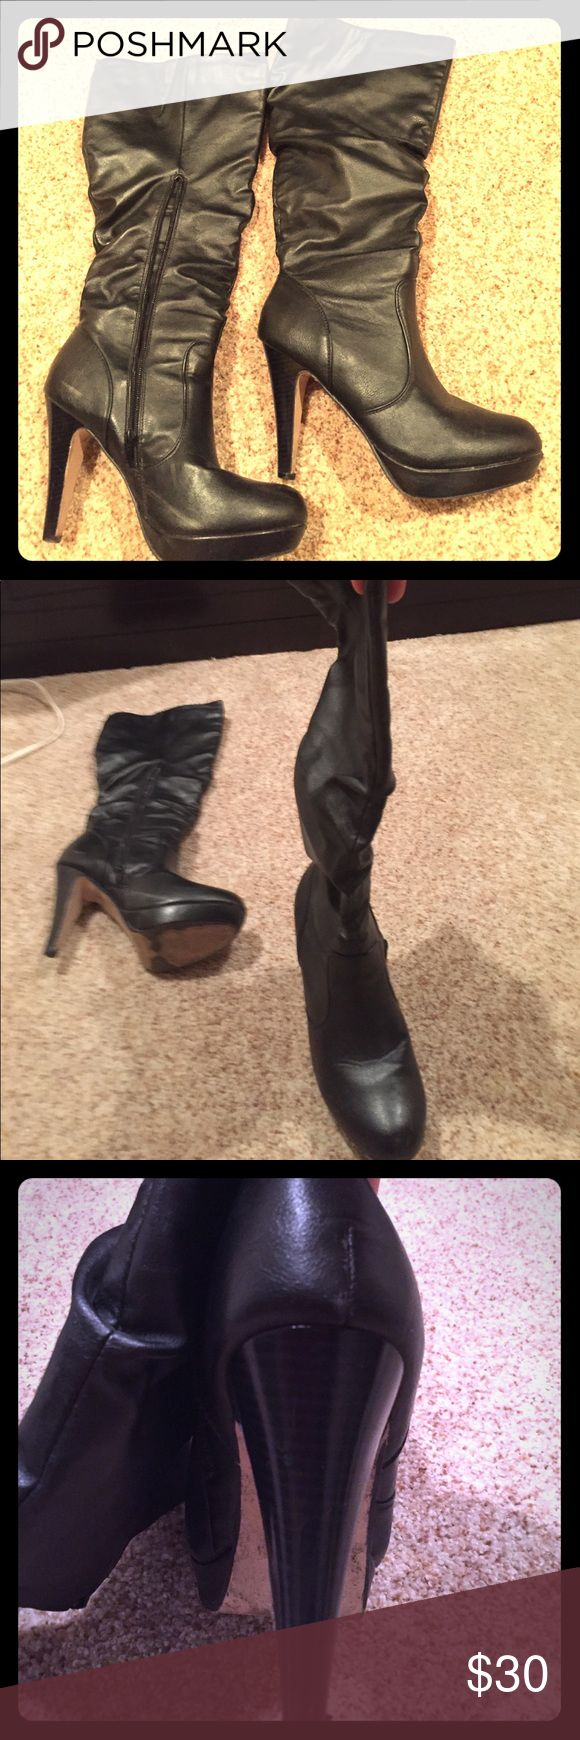 Knee high Black Boot Heals. Steve Maddens. Size 9 Knee high boots with a pump in BLACK Steve Madden Shoes Heeled Boots